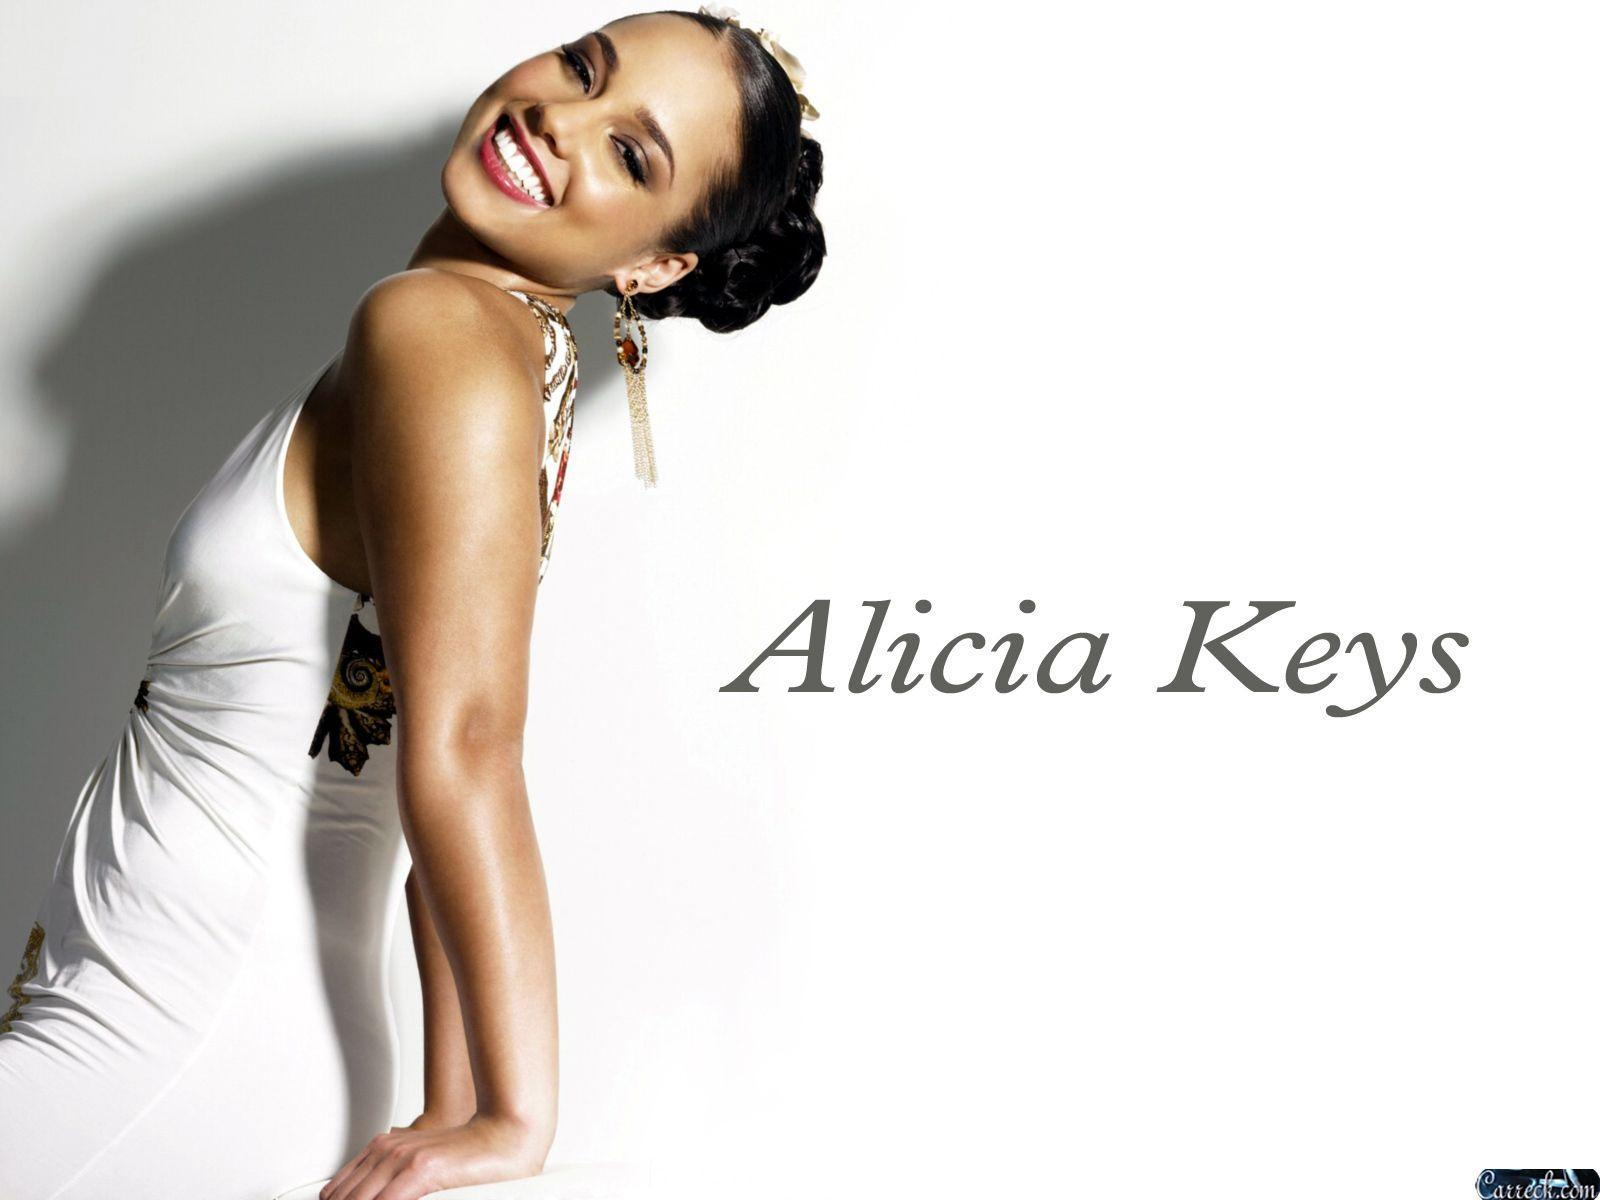 Alicia Keys, HQ Backgrounds | HD wallpapers Gallery | Gallsource.com